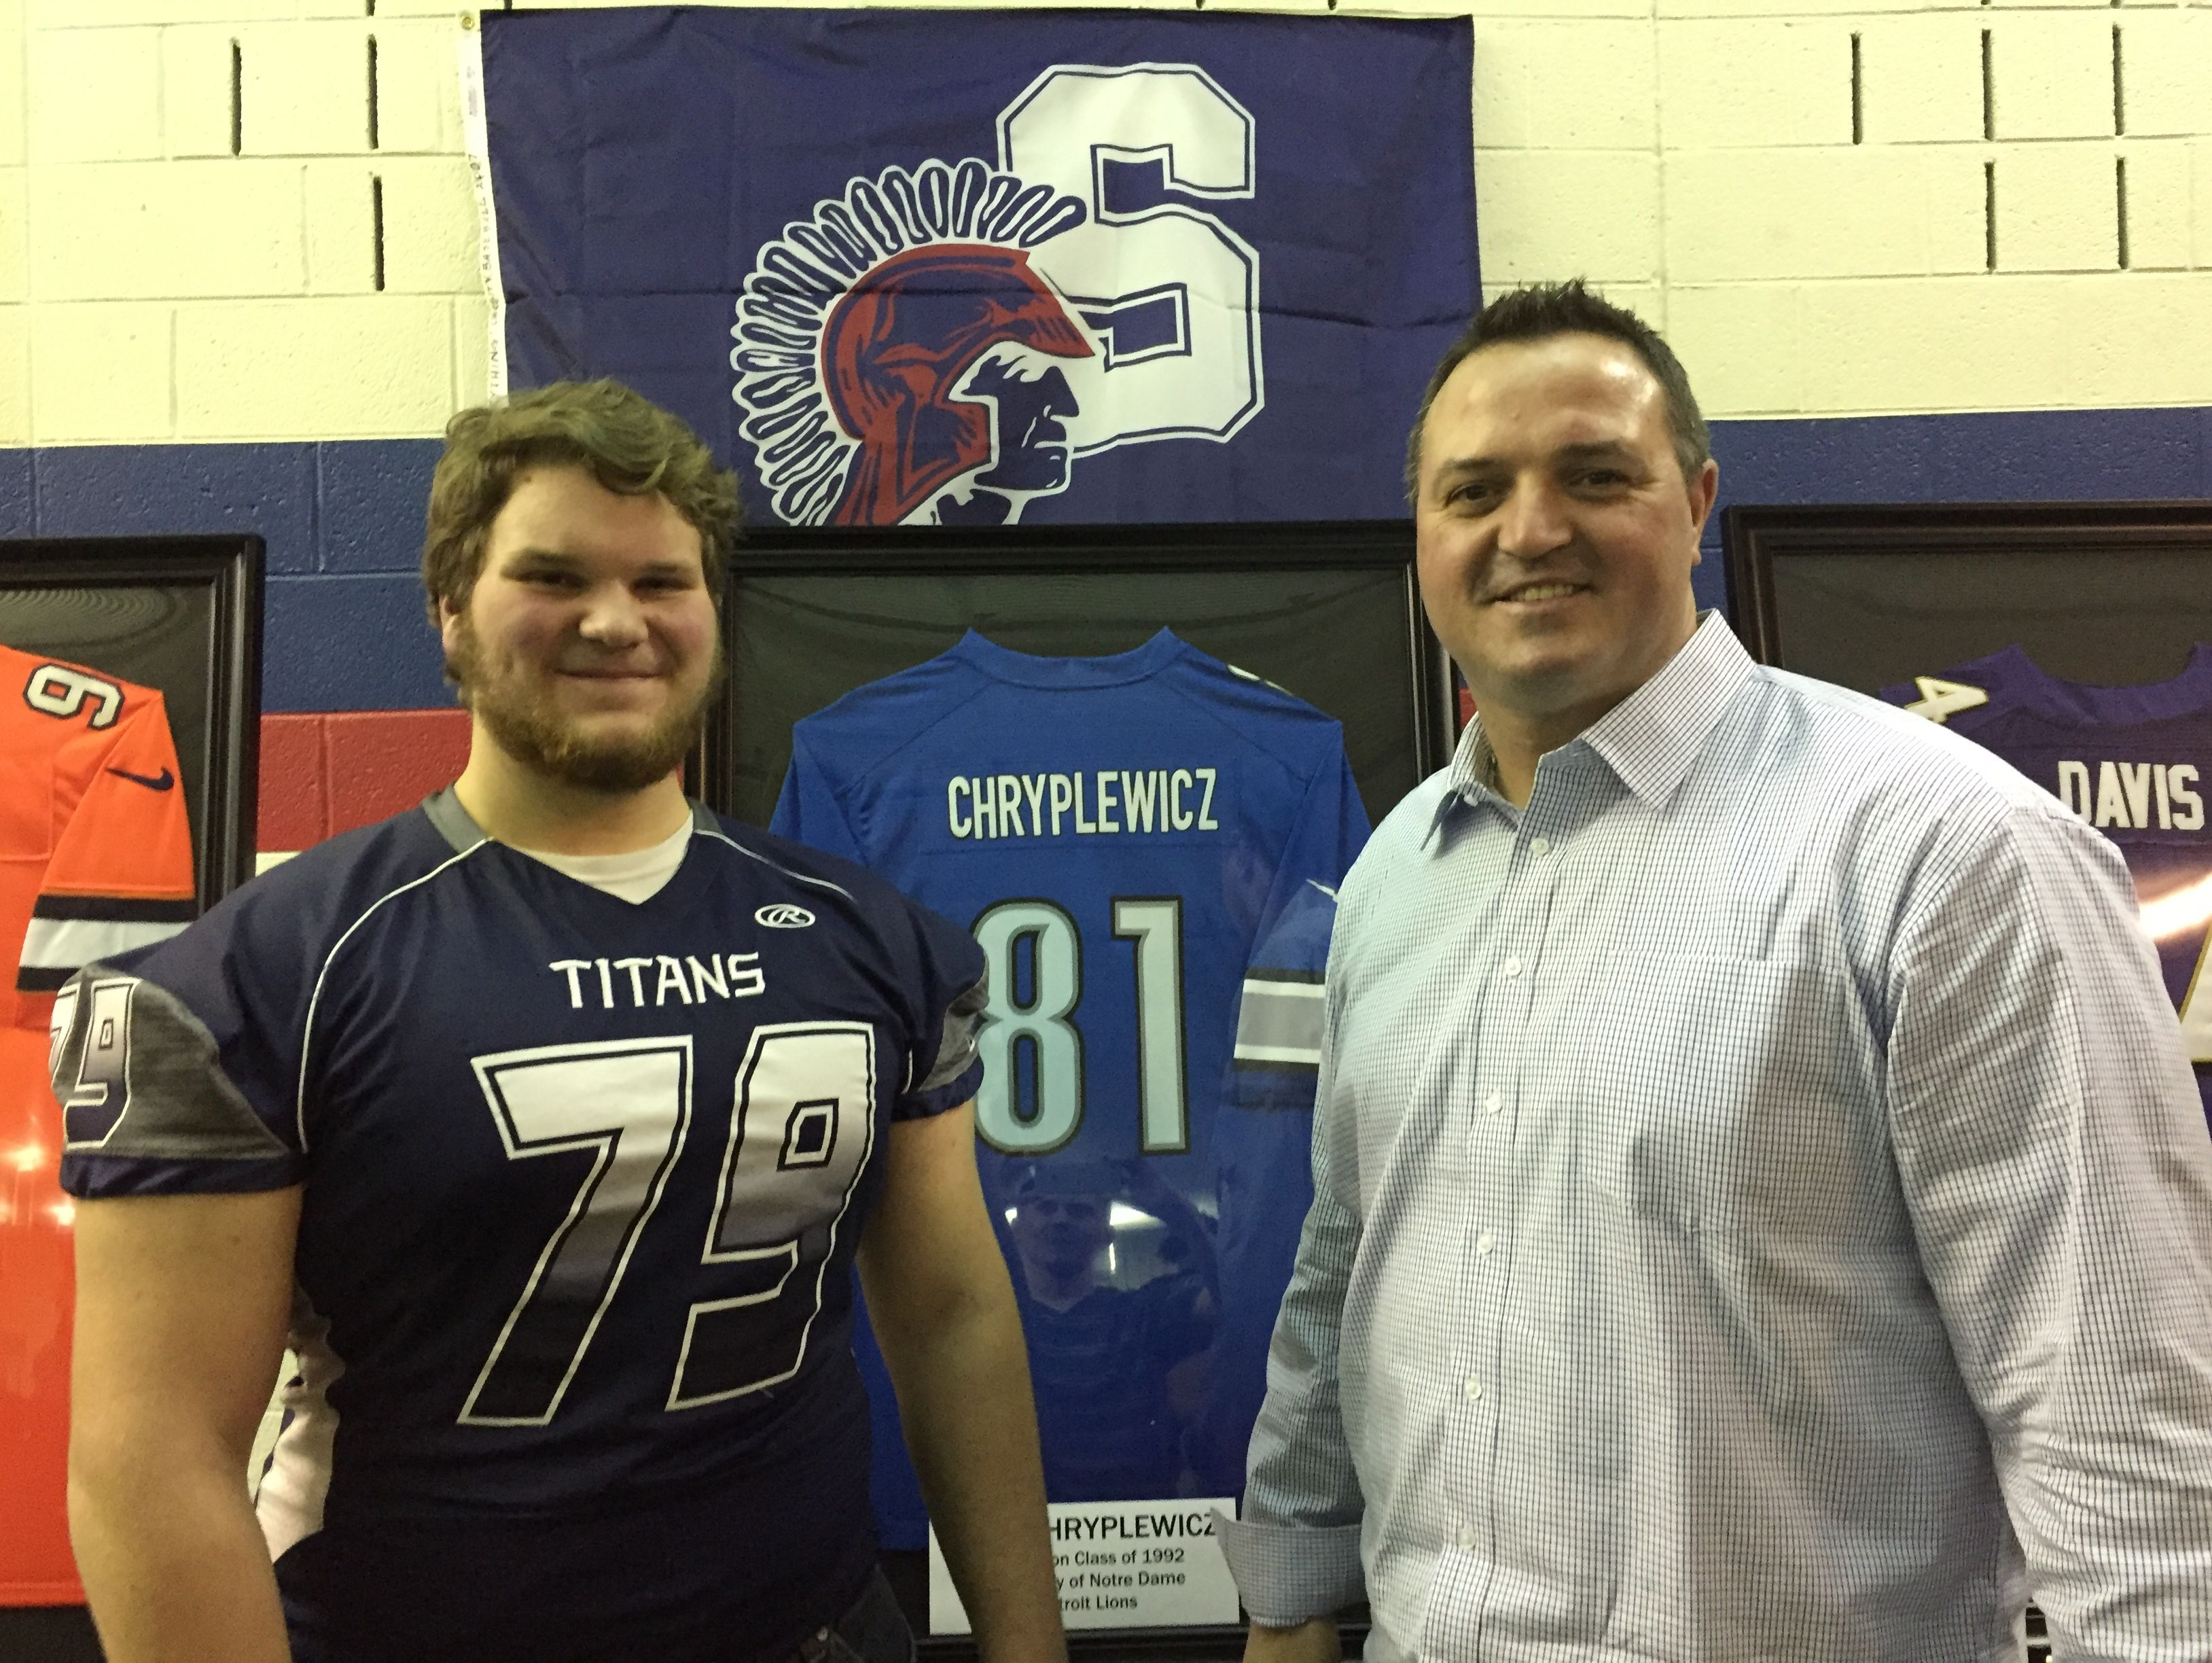 Former Sterling Heights Stevenson and Detroit Lions standout Pete Chryplewicz takes a picture with Stevenson junior Jacob Henry during a jersey ceremony in Sterling Heights on Jan. 26, 2017